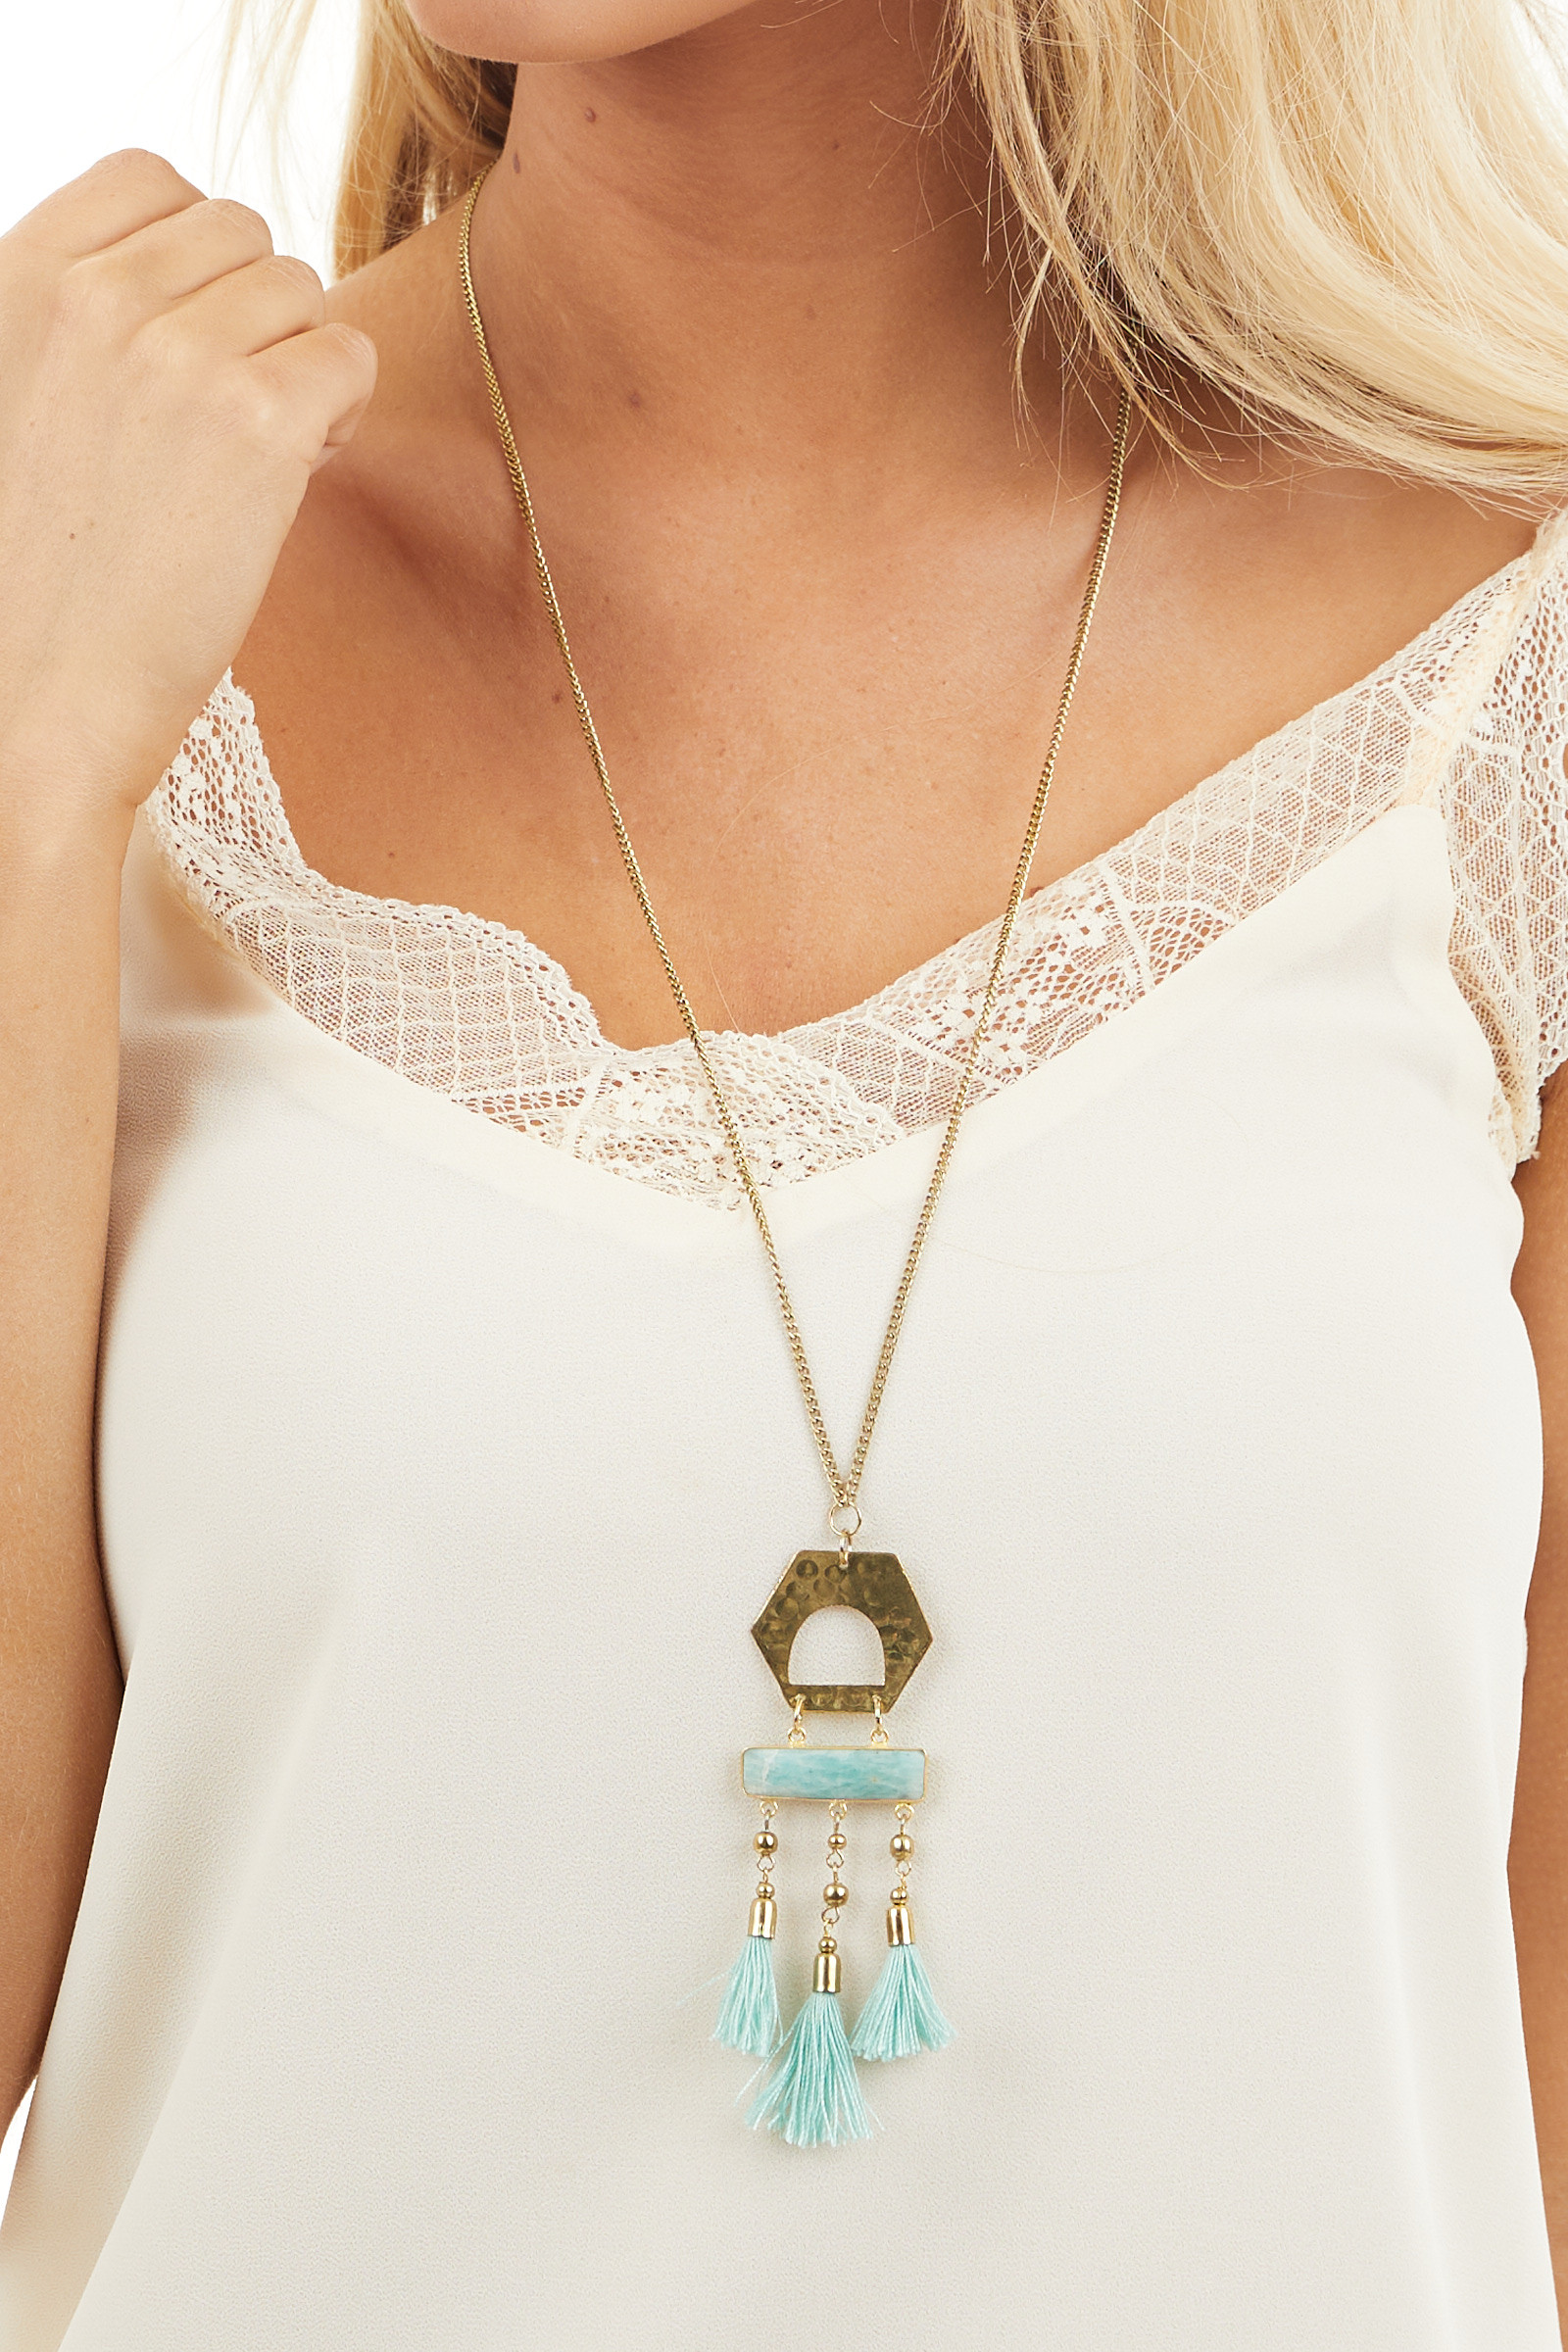 Gold Long Chain Necklace with Amazonite Stone and Tassels